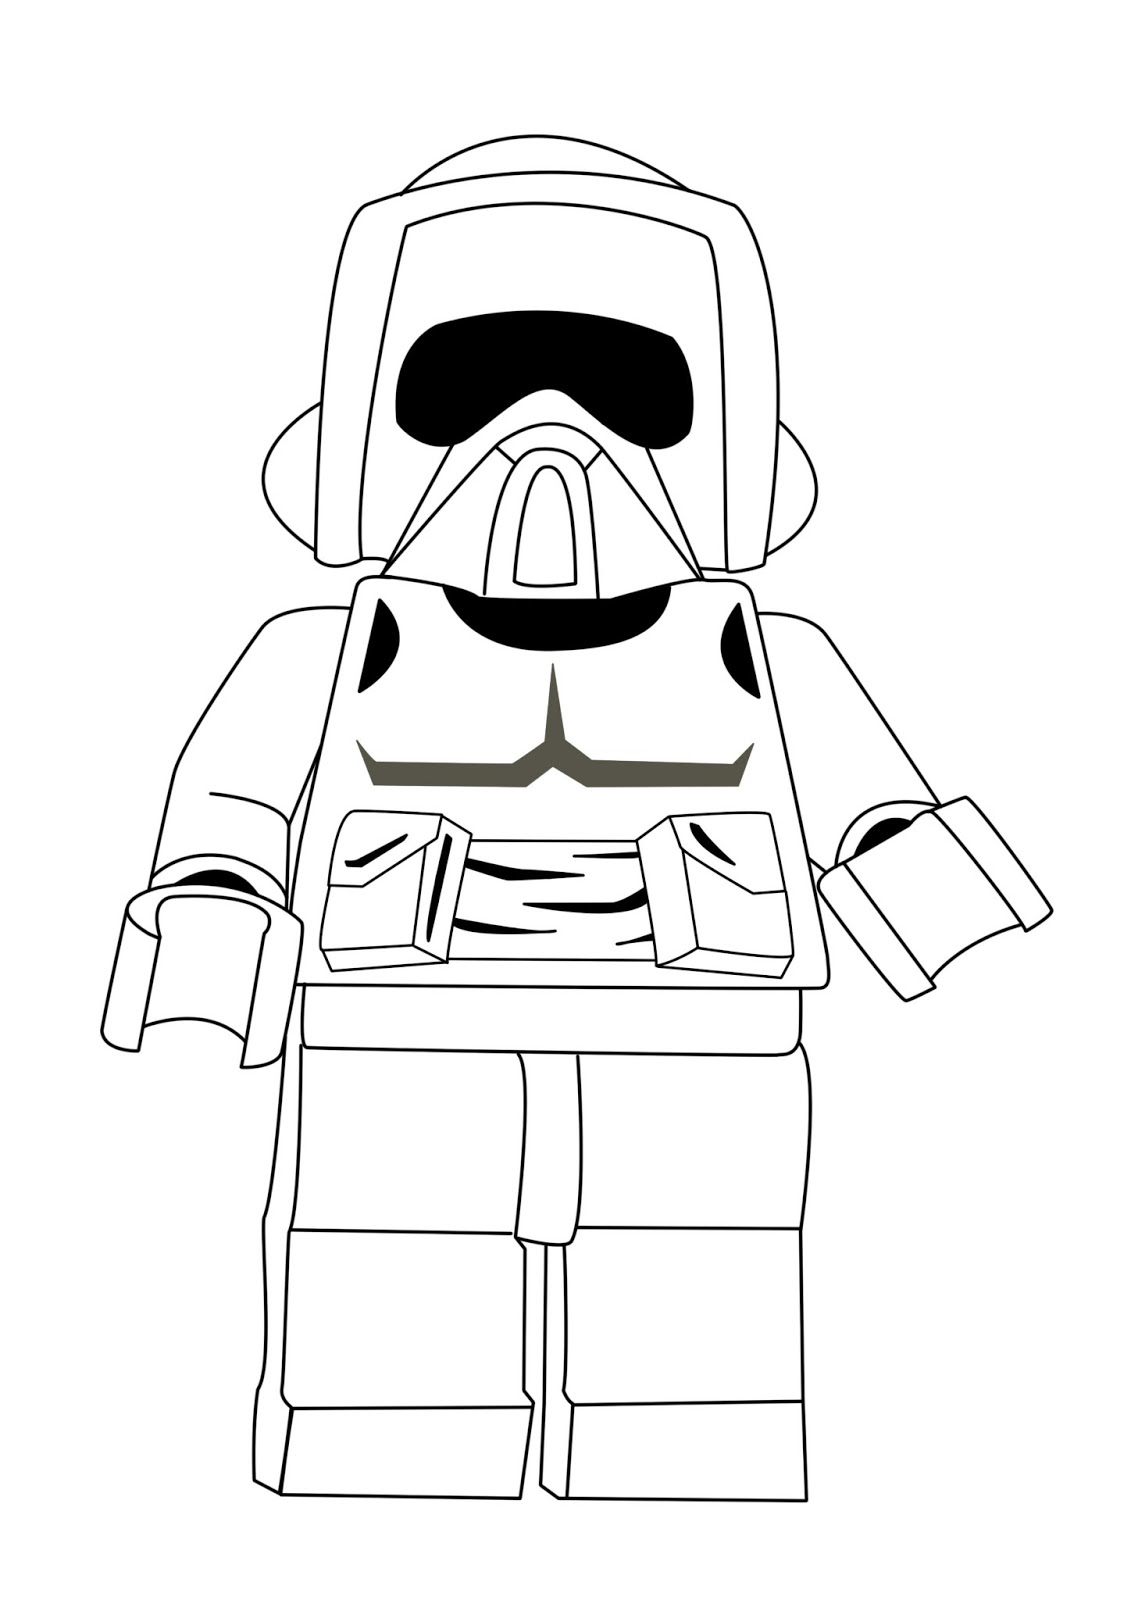 lego star wars coloring pages printable star wars lego drawing at getdrawings free download star printable pages wars coloring lego